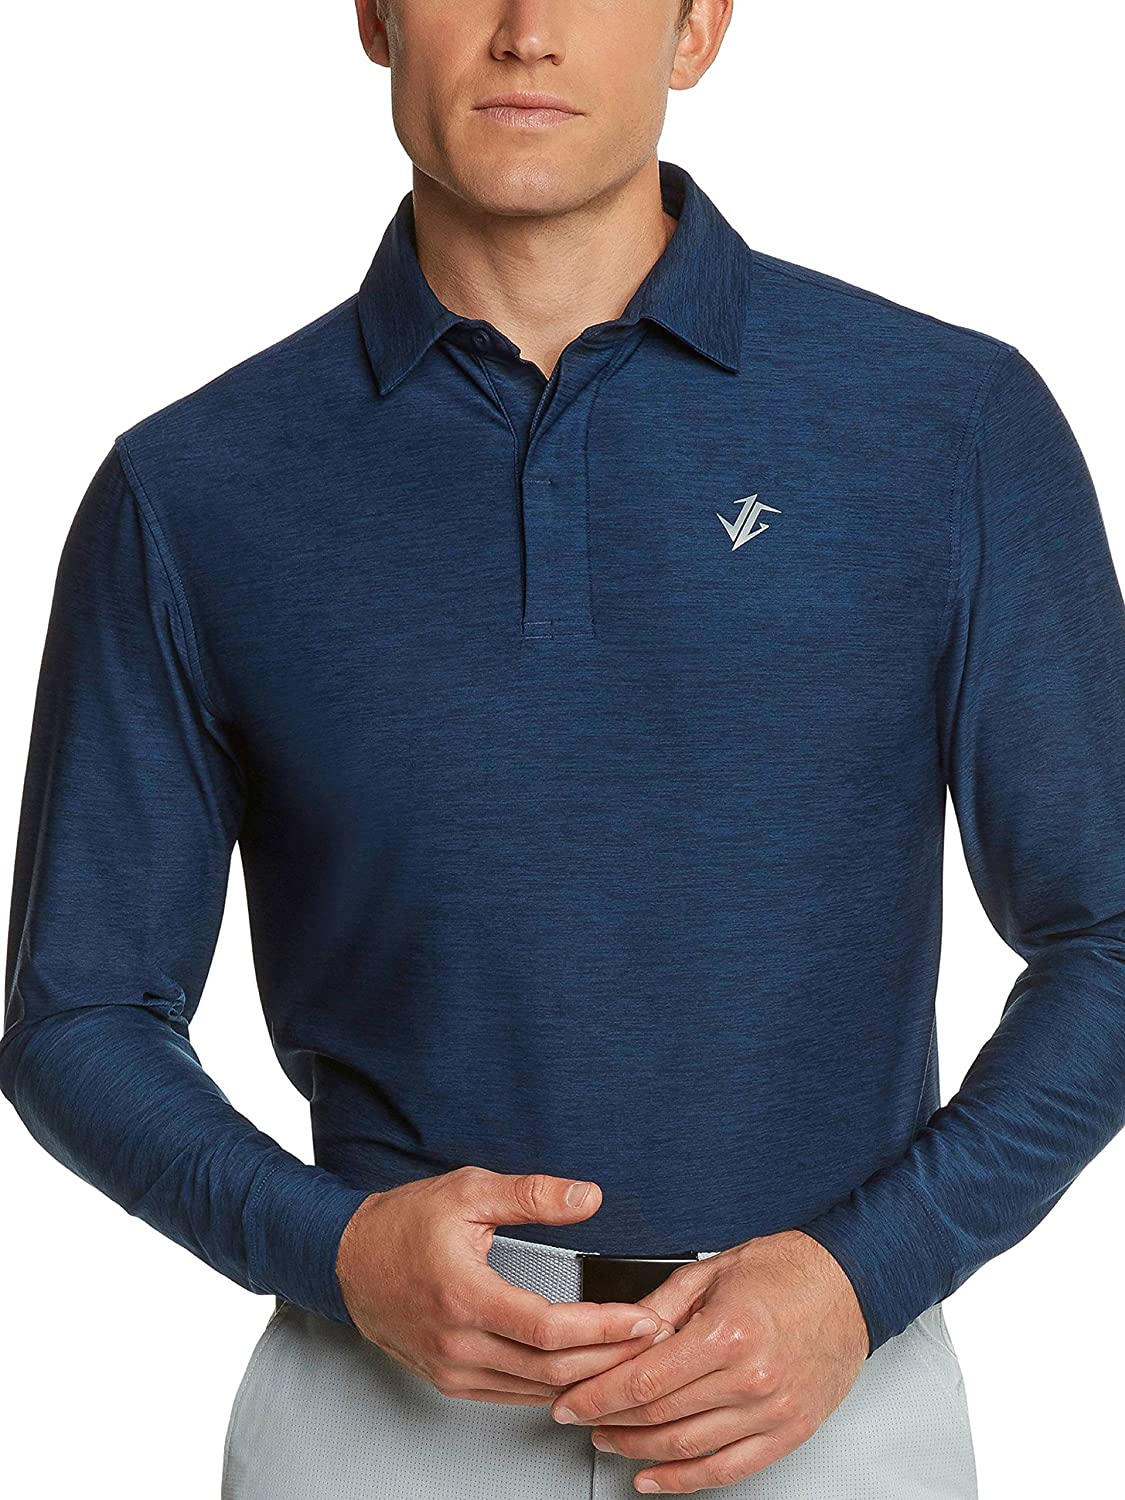 982e643f WEAR THESE BUSINESS CASUAL POLOS ALL YEAR ROUND - Perfect for work, perfect  for golf. Dri fit material makes these lightweight dress shirts ideal any  time ...